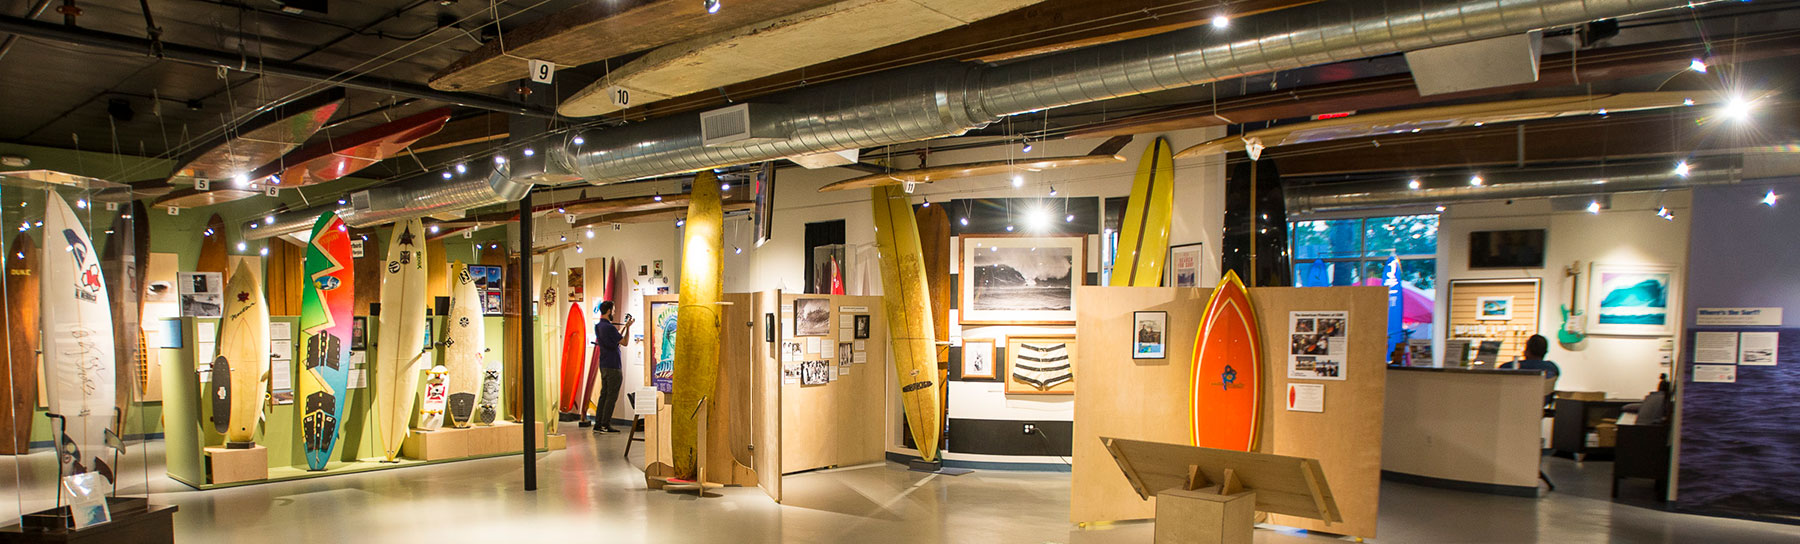 California Surf Museum: An Overview